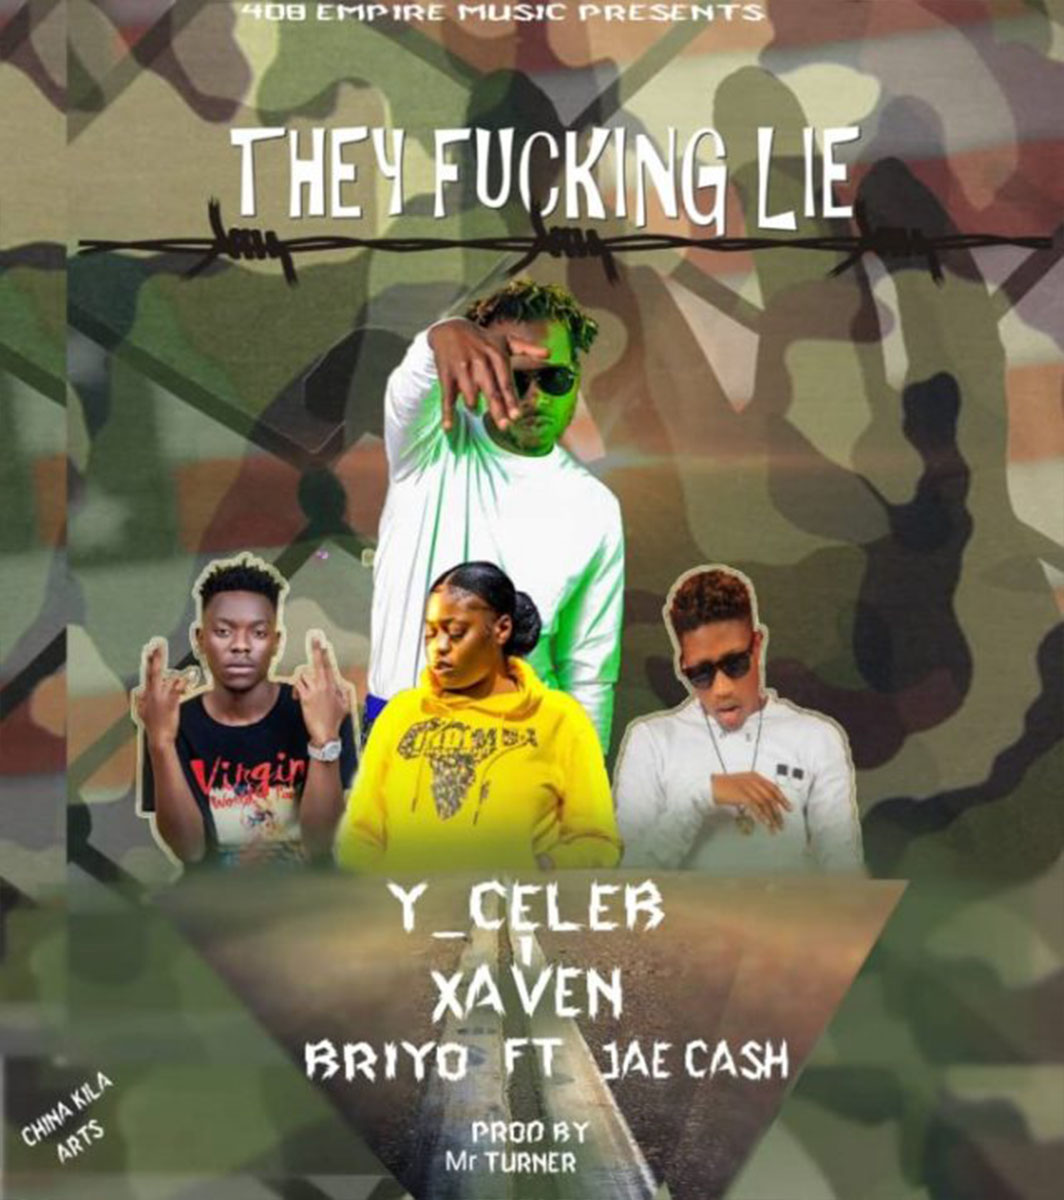 Y Celeb, Xaven & Briyo ft. Jae Cash - They F**king Lie